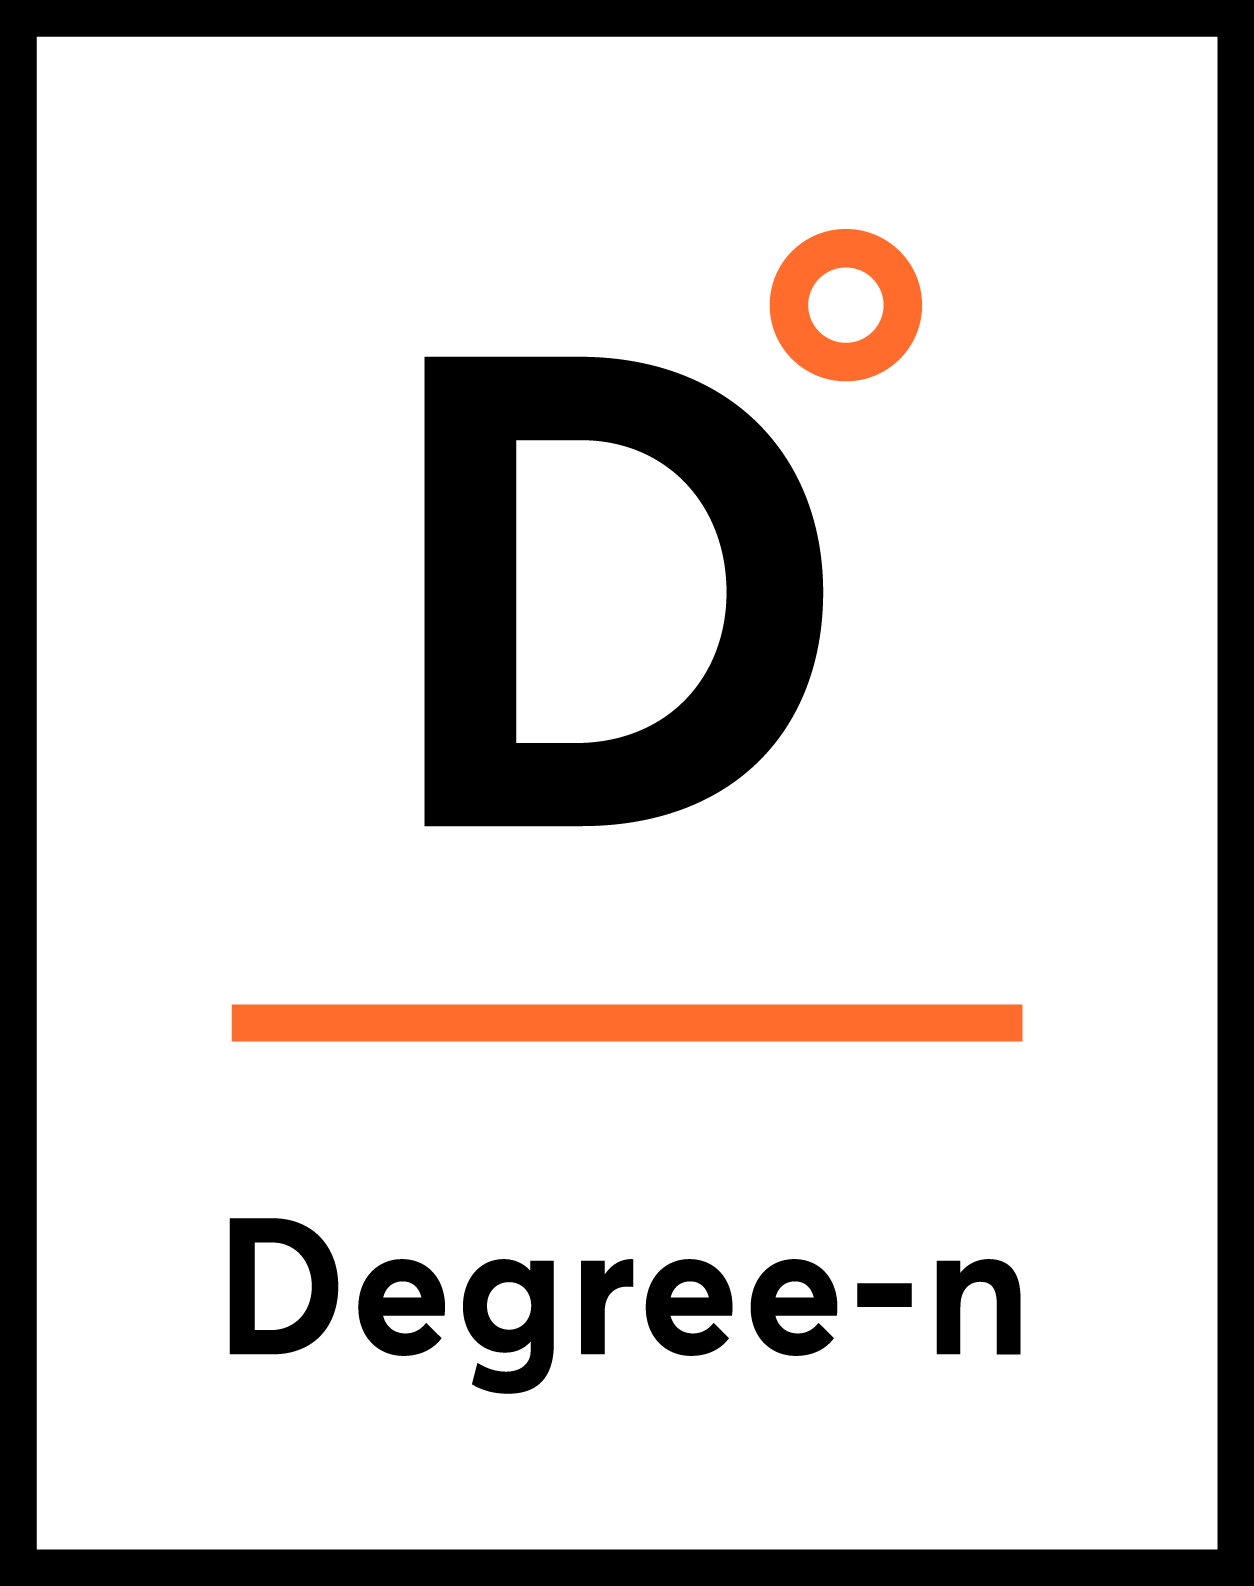 degreen_logo_zwart_orange021U_vierkant